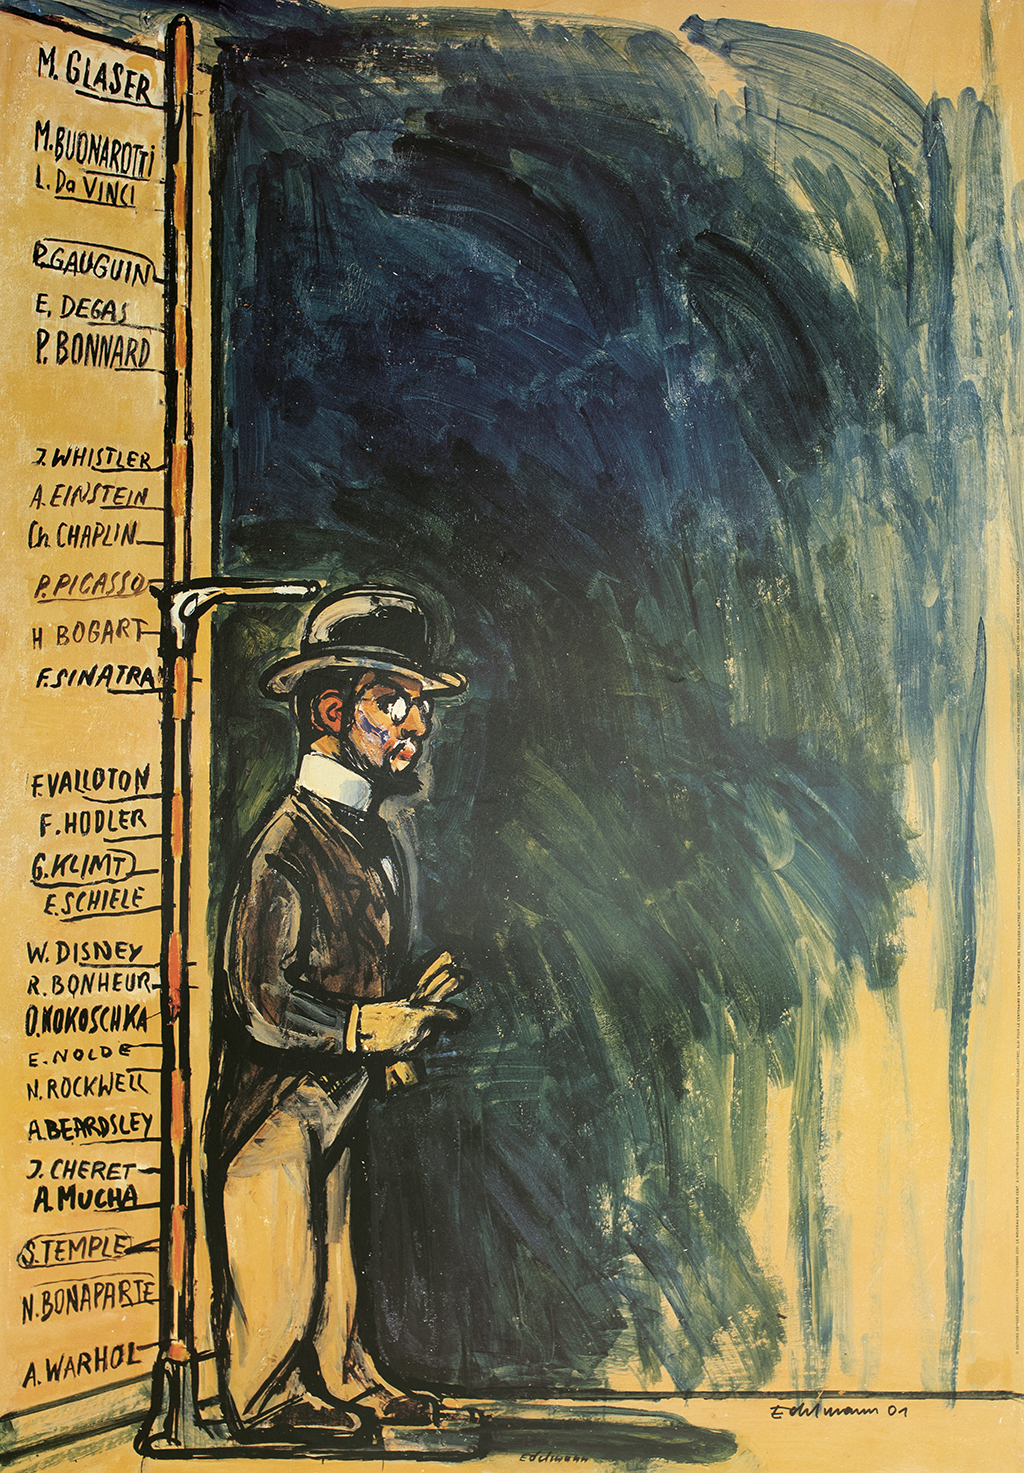 Painting of Toulouse-Lautrec standing against a measuring device. The wall behind him depicts the relative heights of notable artists and cultural figures.